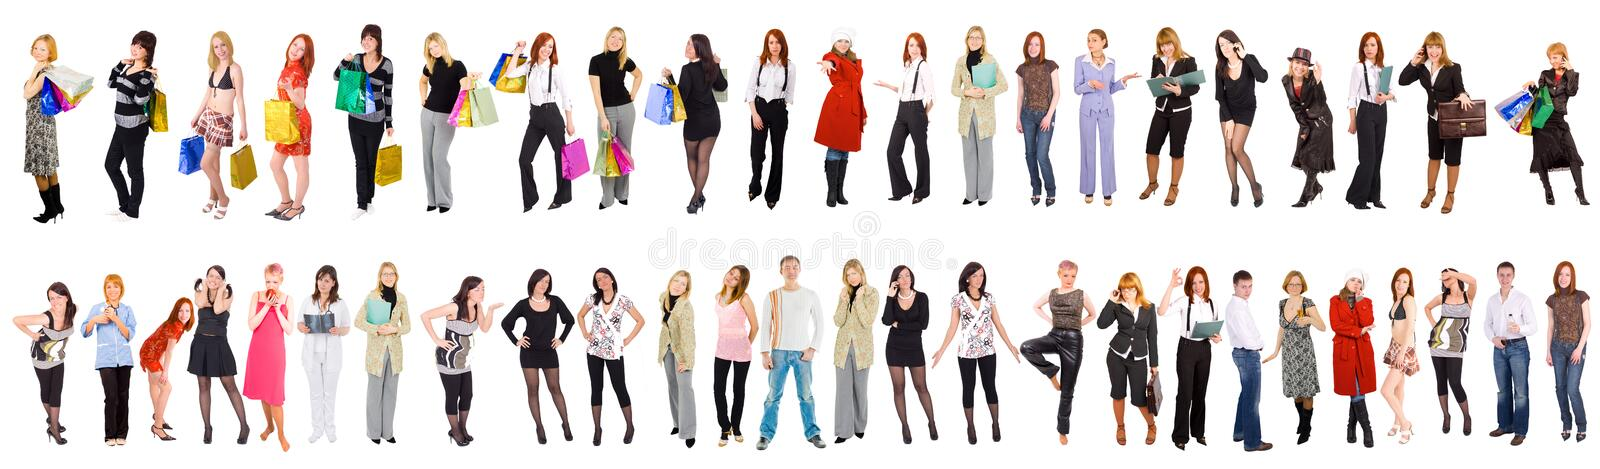 47 separate people royalty free stock photography